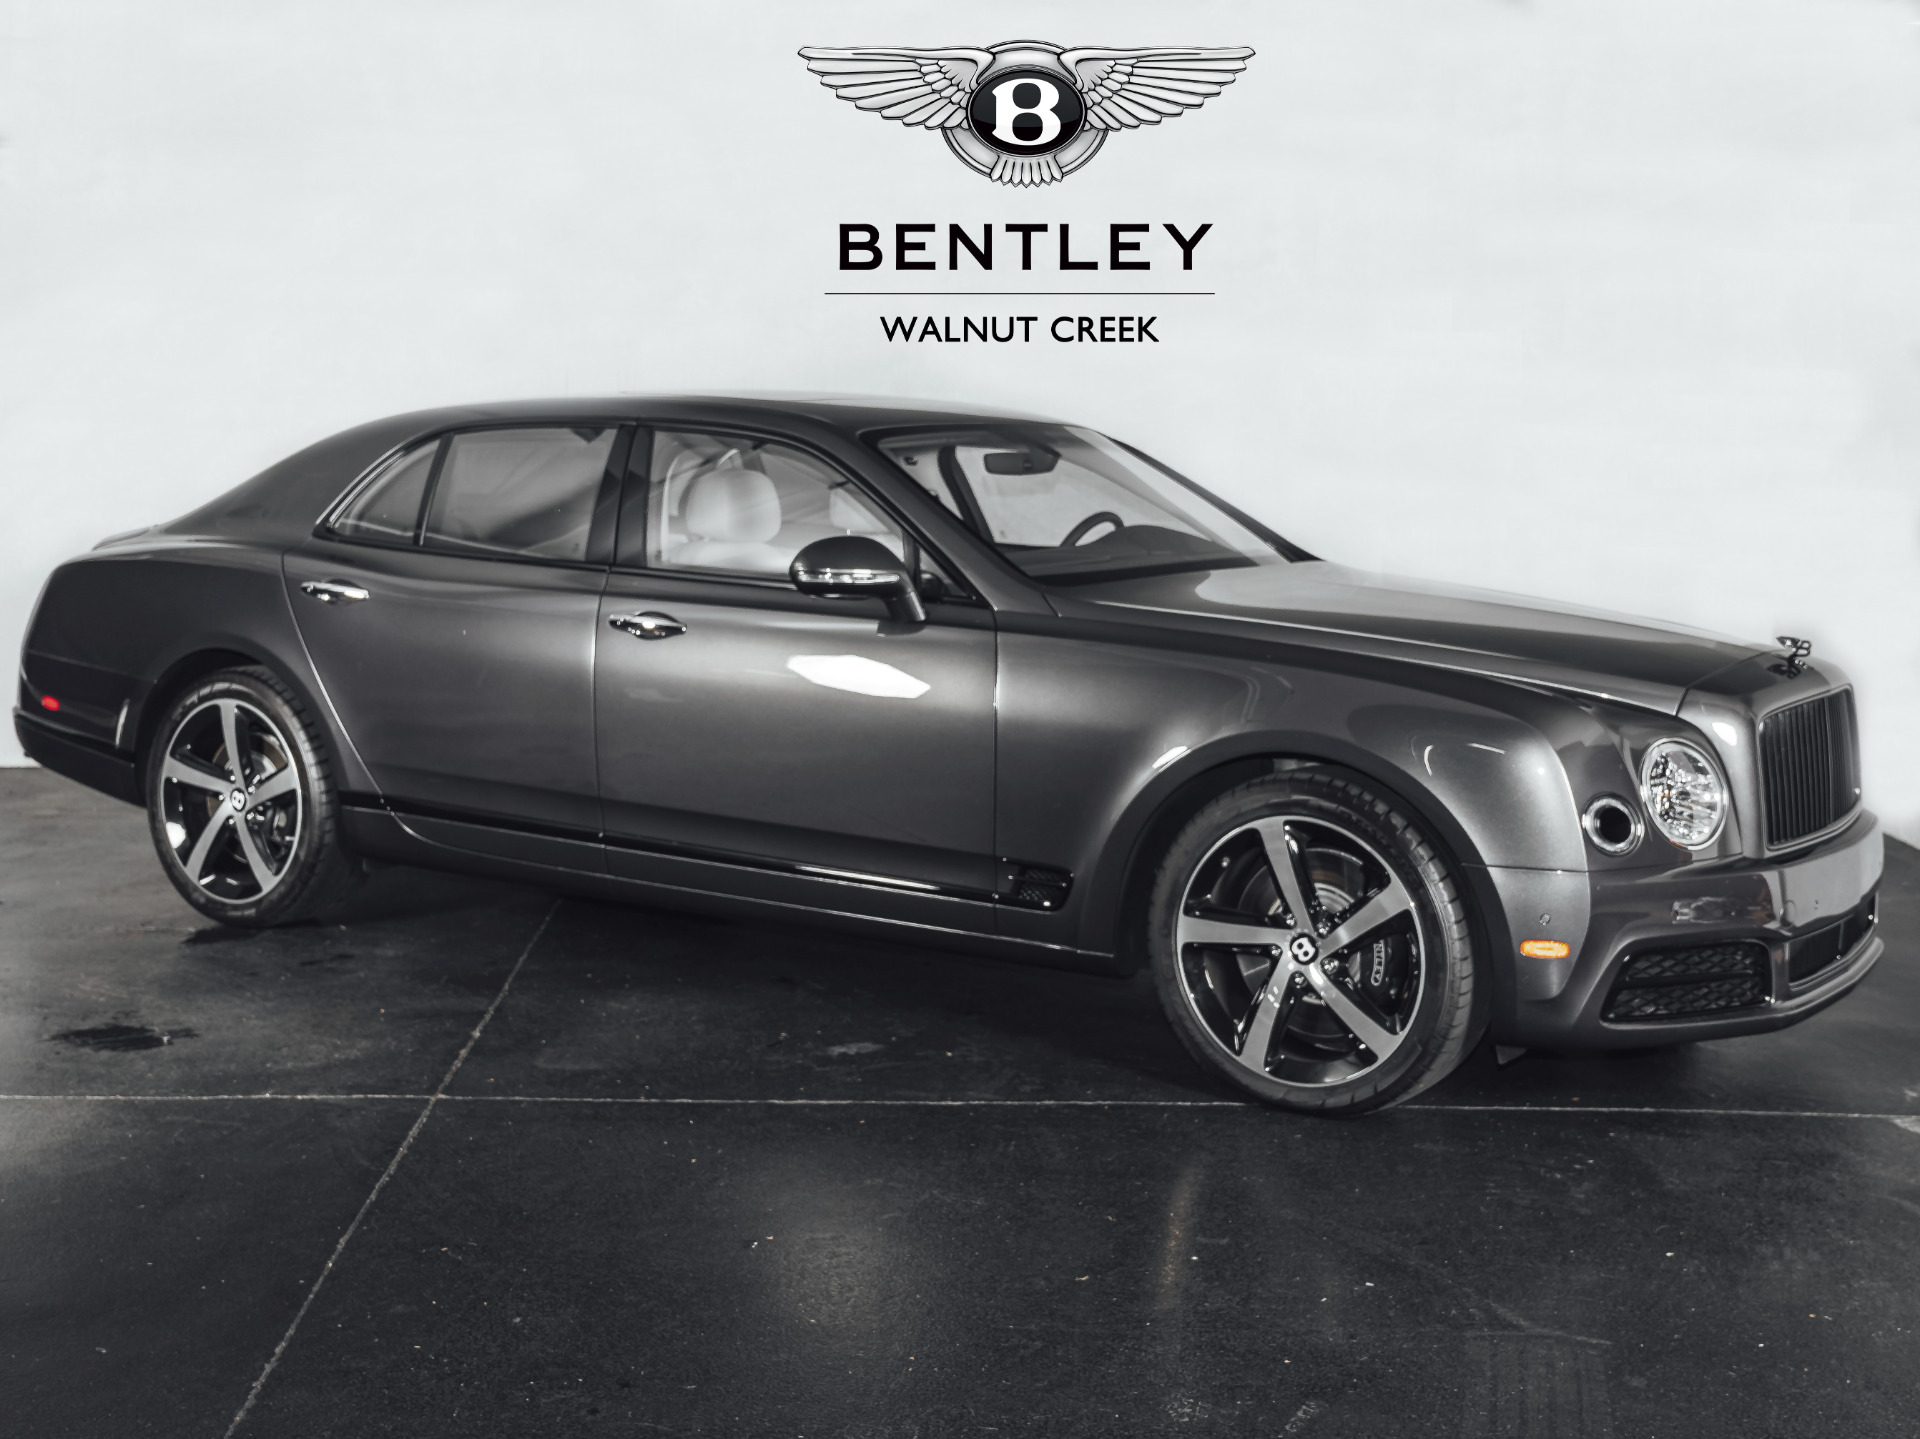 Used 2018 Bentley Mulsanne Design Series For Sale 259 950 The Luxury Collection Walnut Creek Stock B157